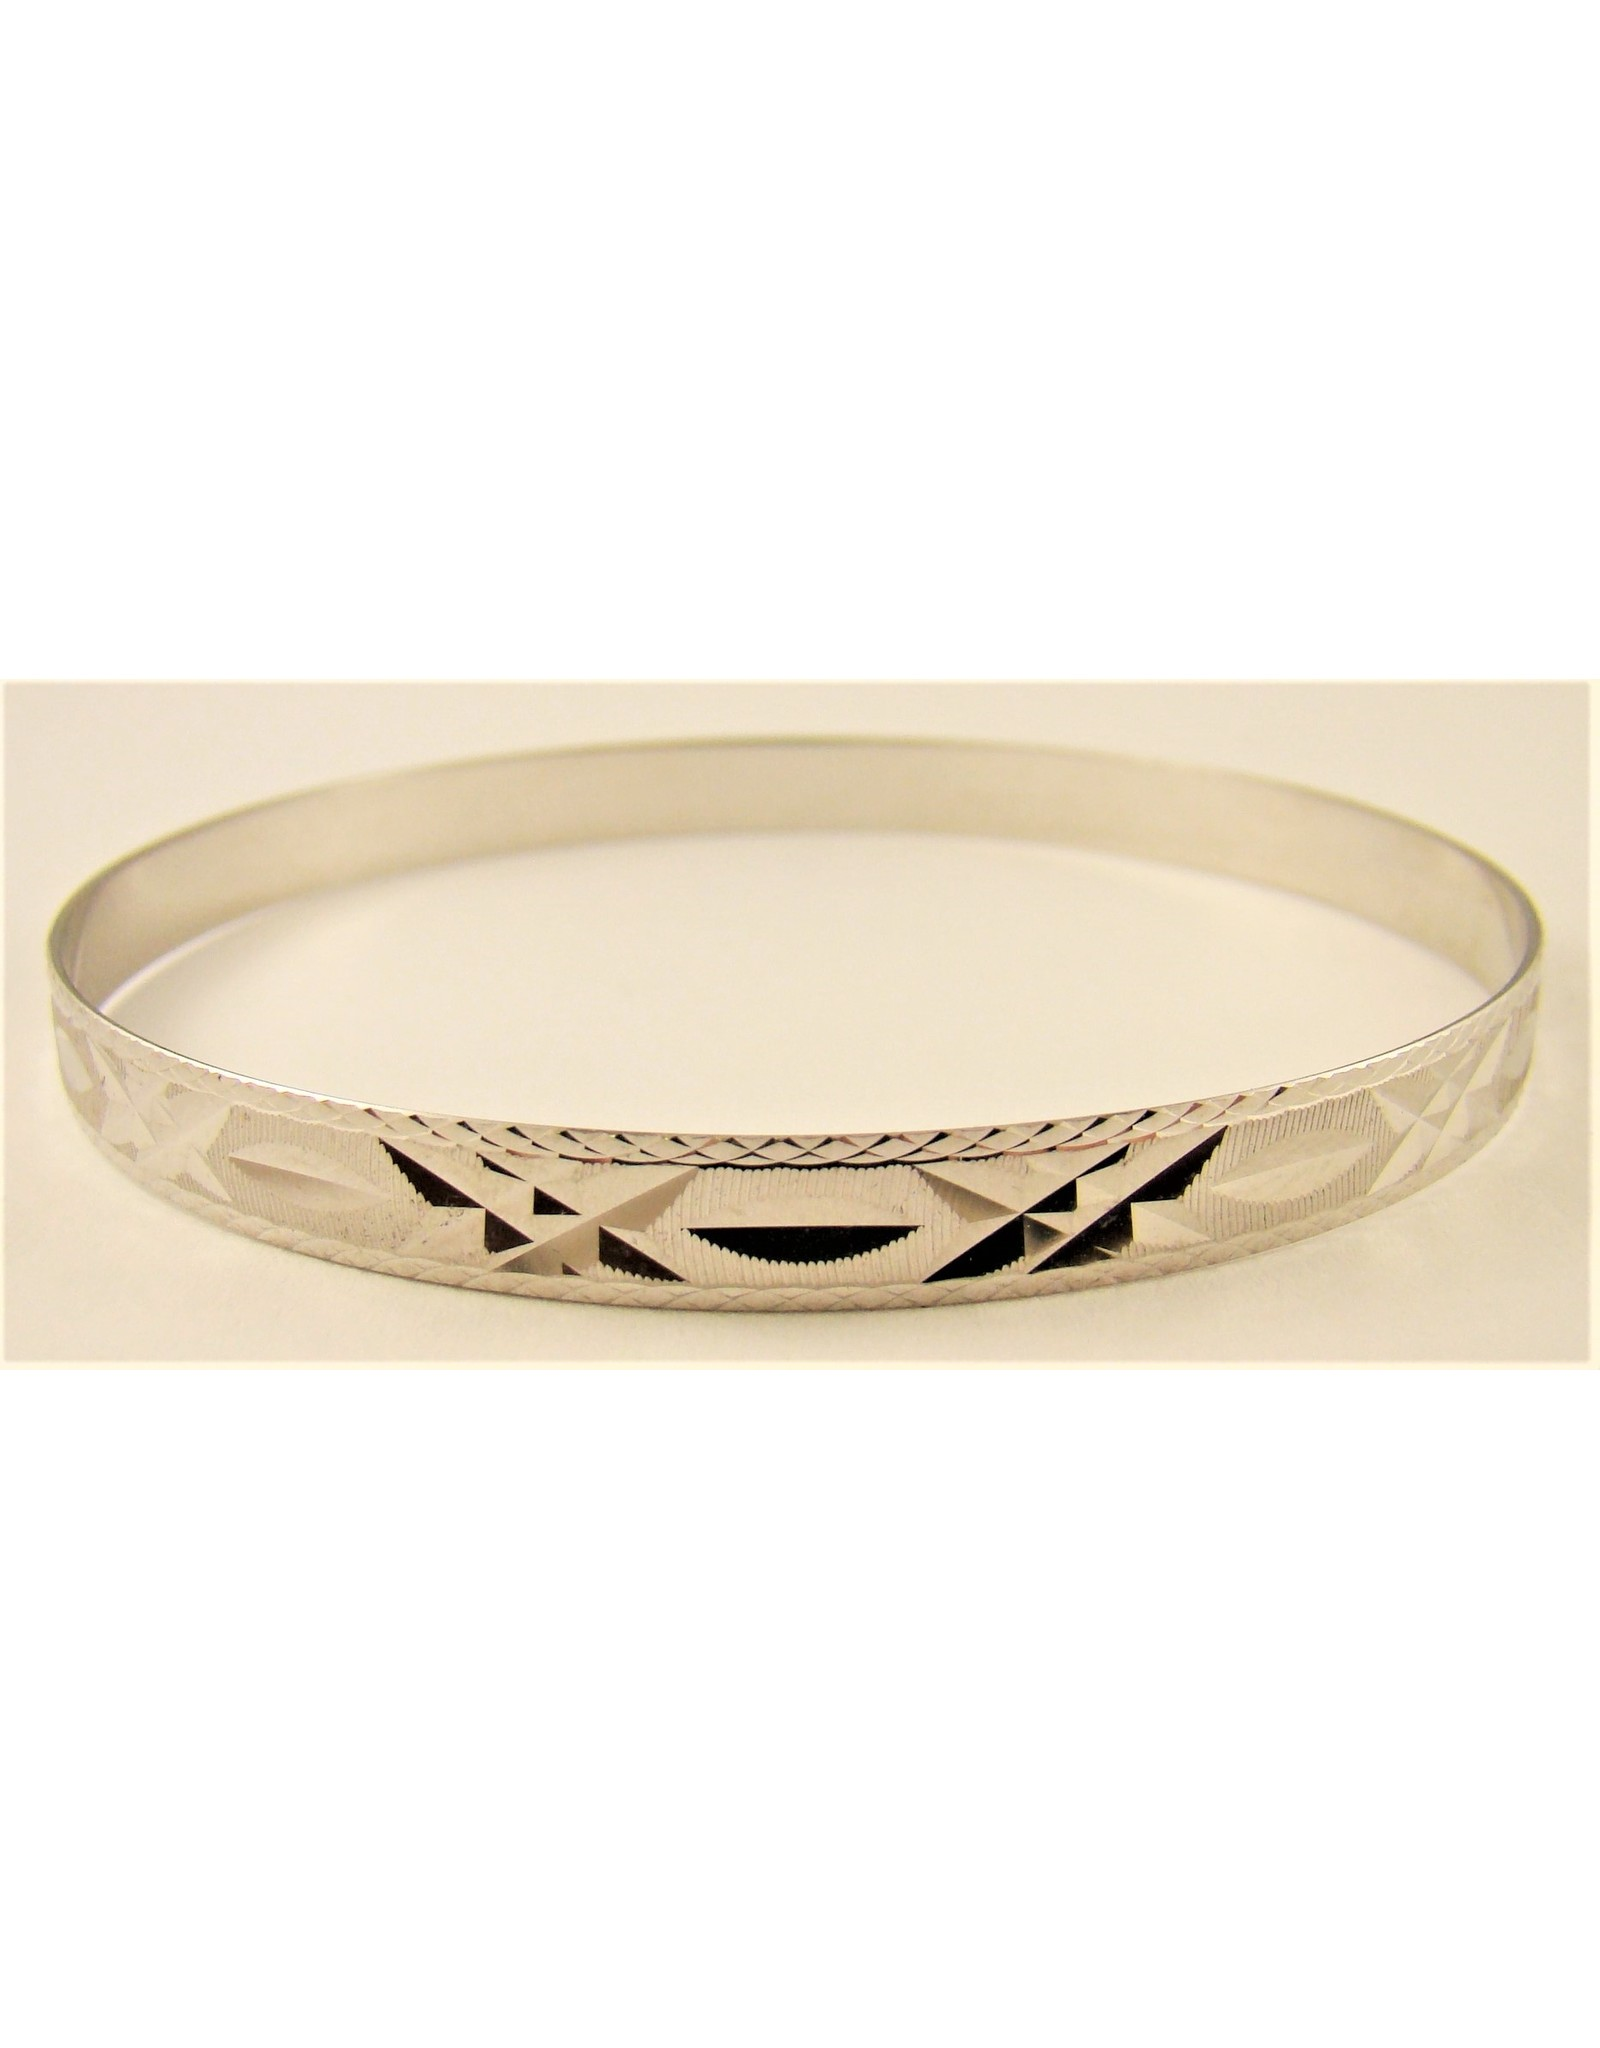 6mm Diamond Cut Flat Bangle 10KW